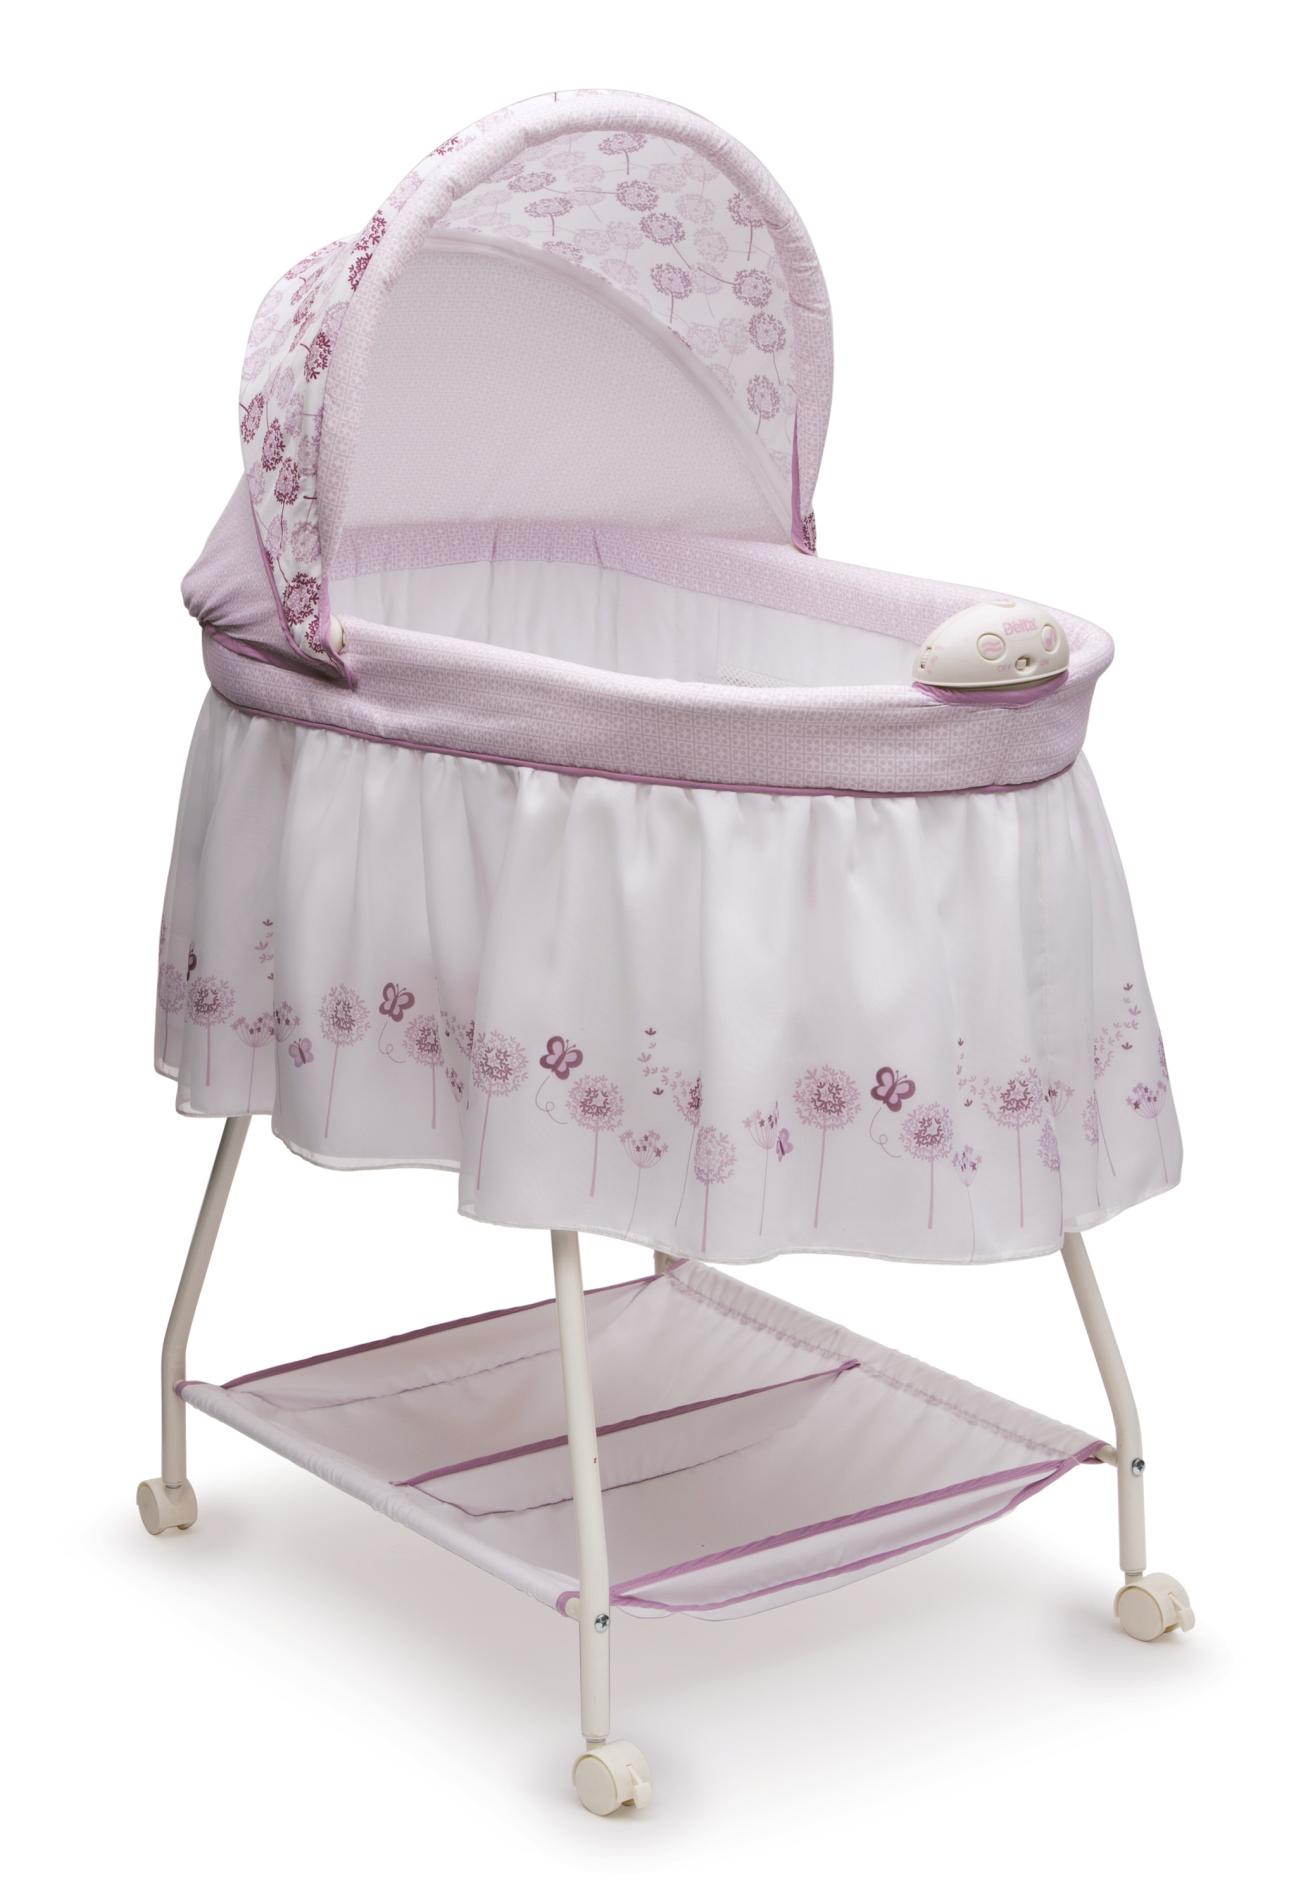 baby bassinet delta children infant girlu0027s sweet beginnings bassinet - floral SMOKTMR